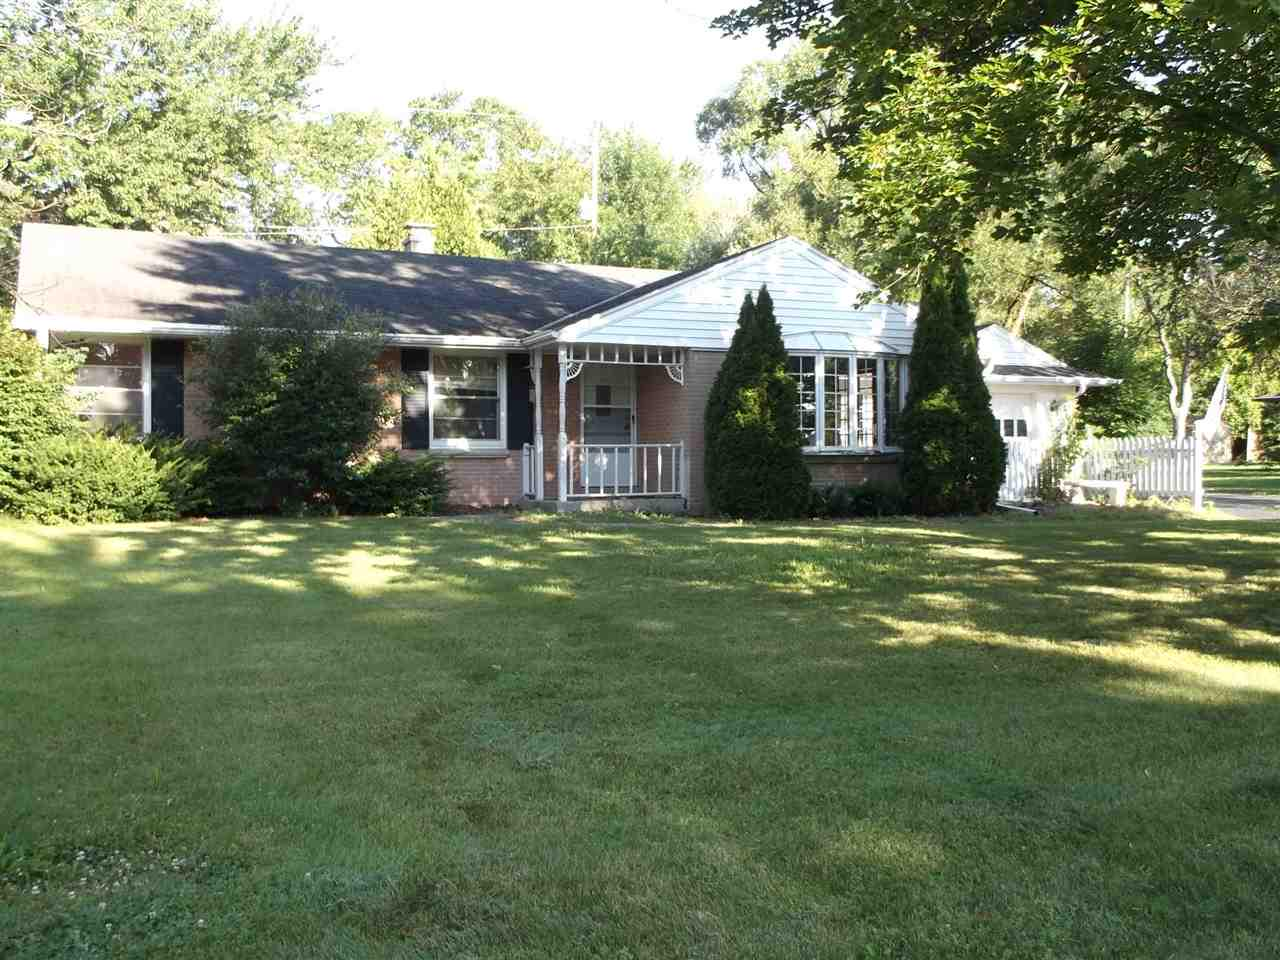 Ranch home on a quiet street, has larger rooms, basement and a garage. Home needs some updating but is in good shape. The house even has a fireplace! Sq footage approx.